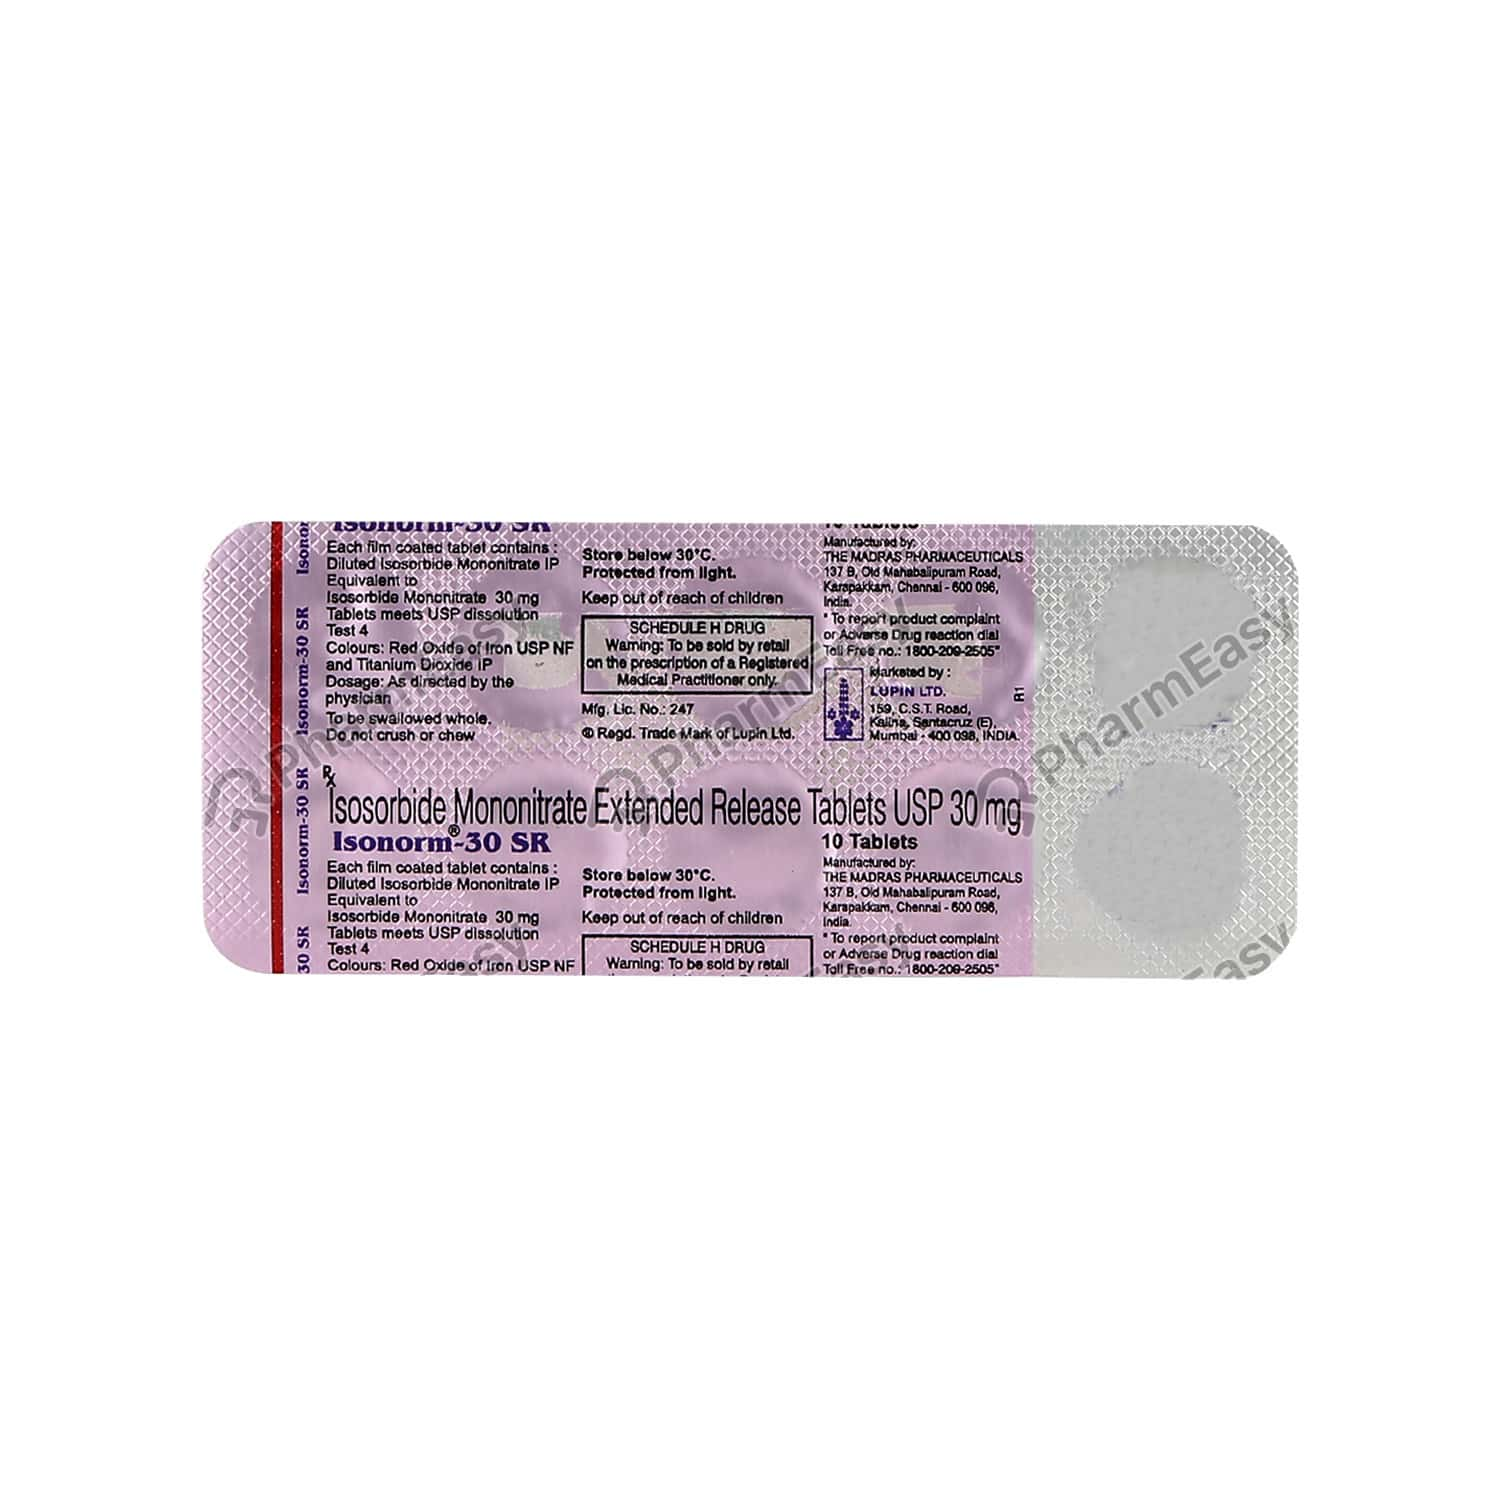 Isonorm Sr 30mg Tablet